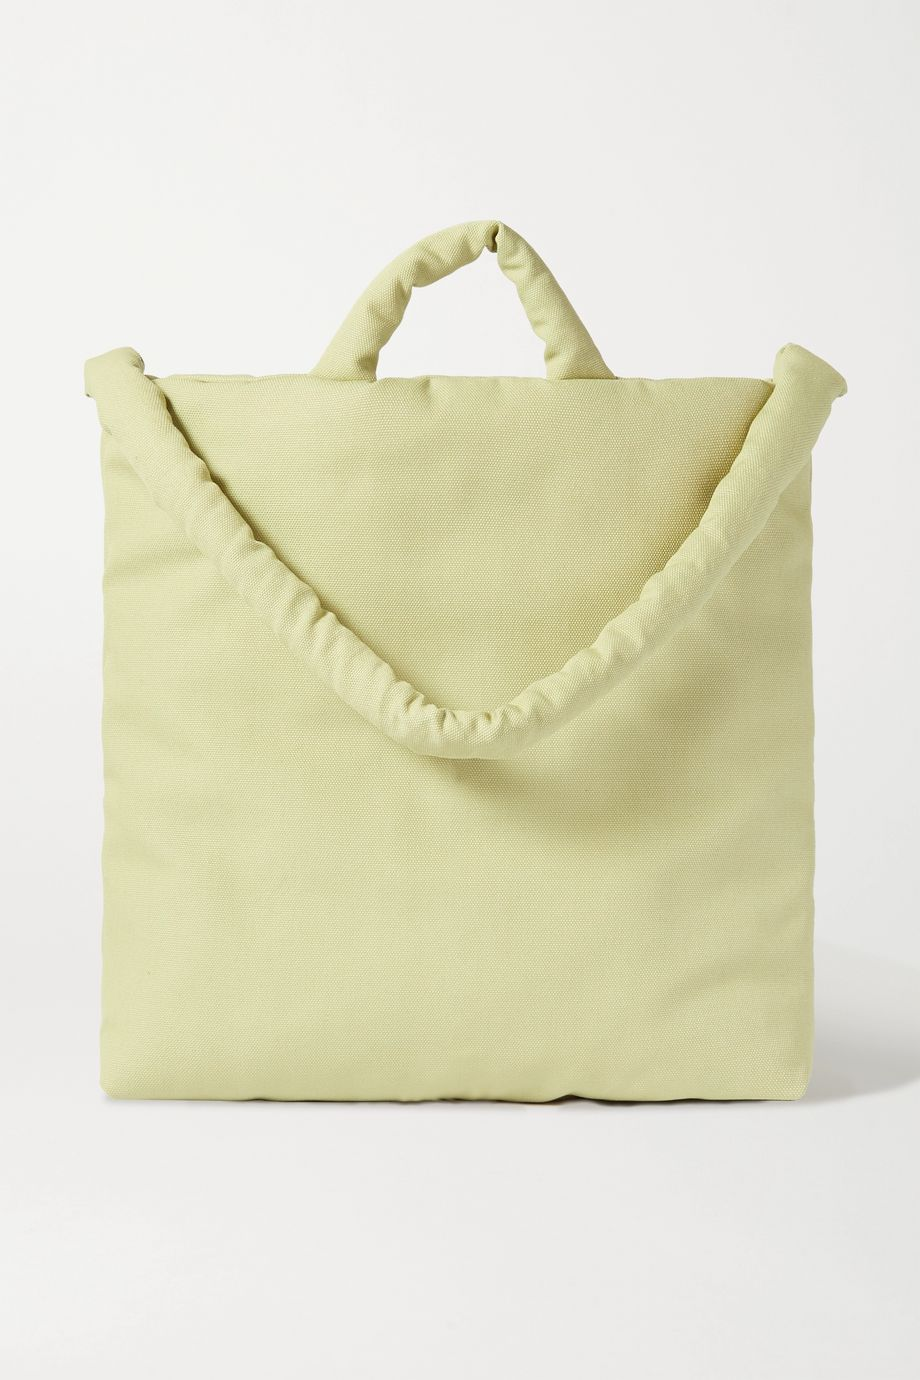 Kassl Editions Padded canvas tote